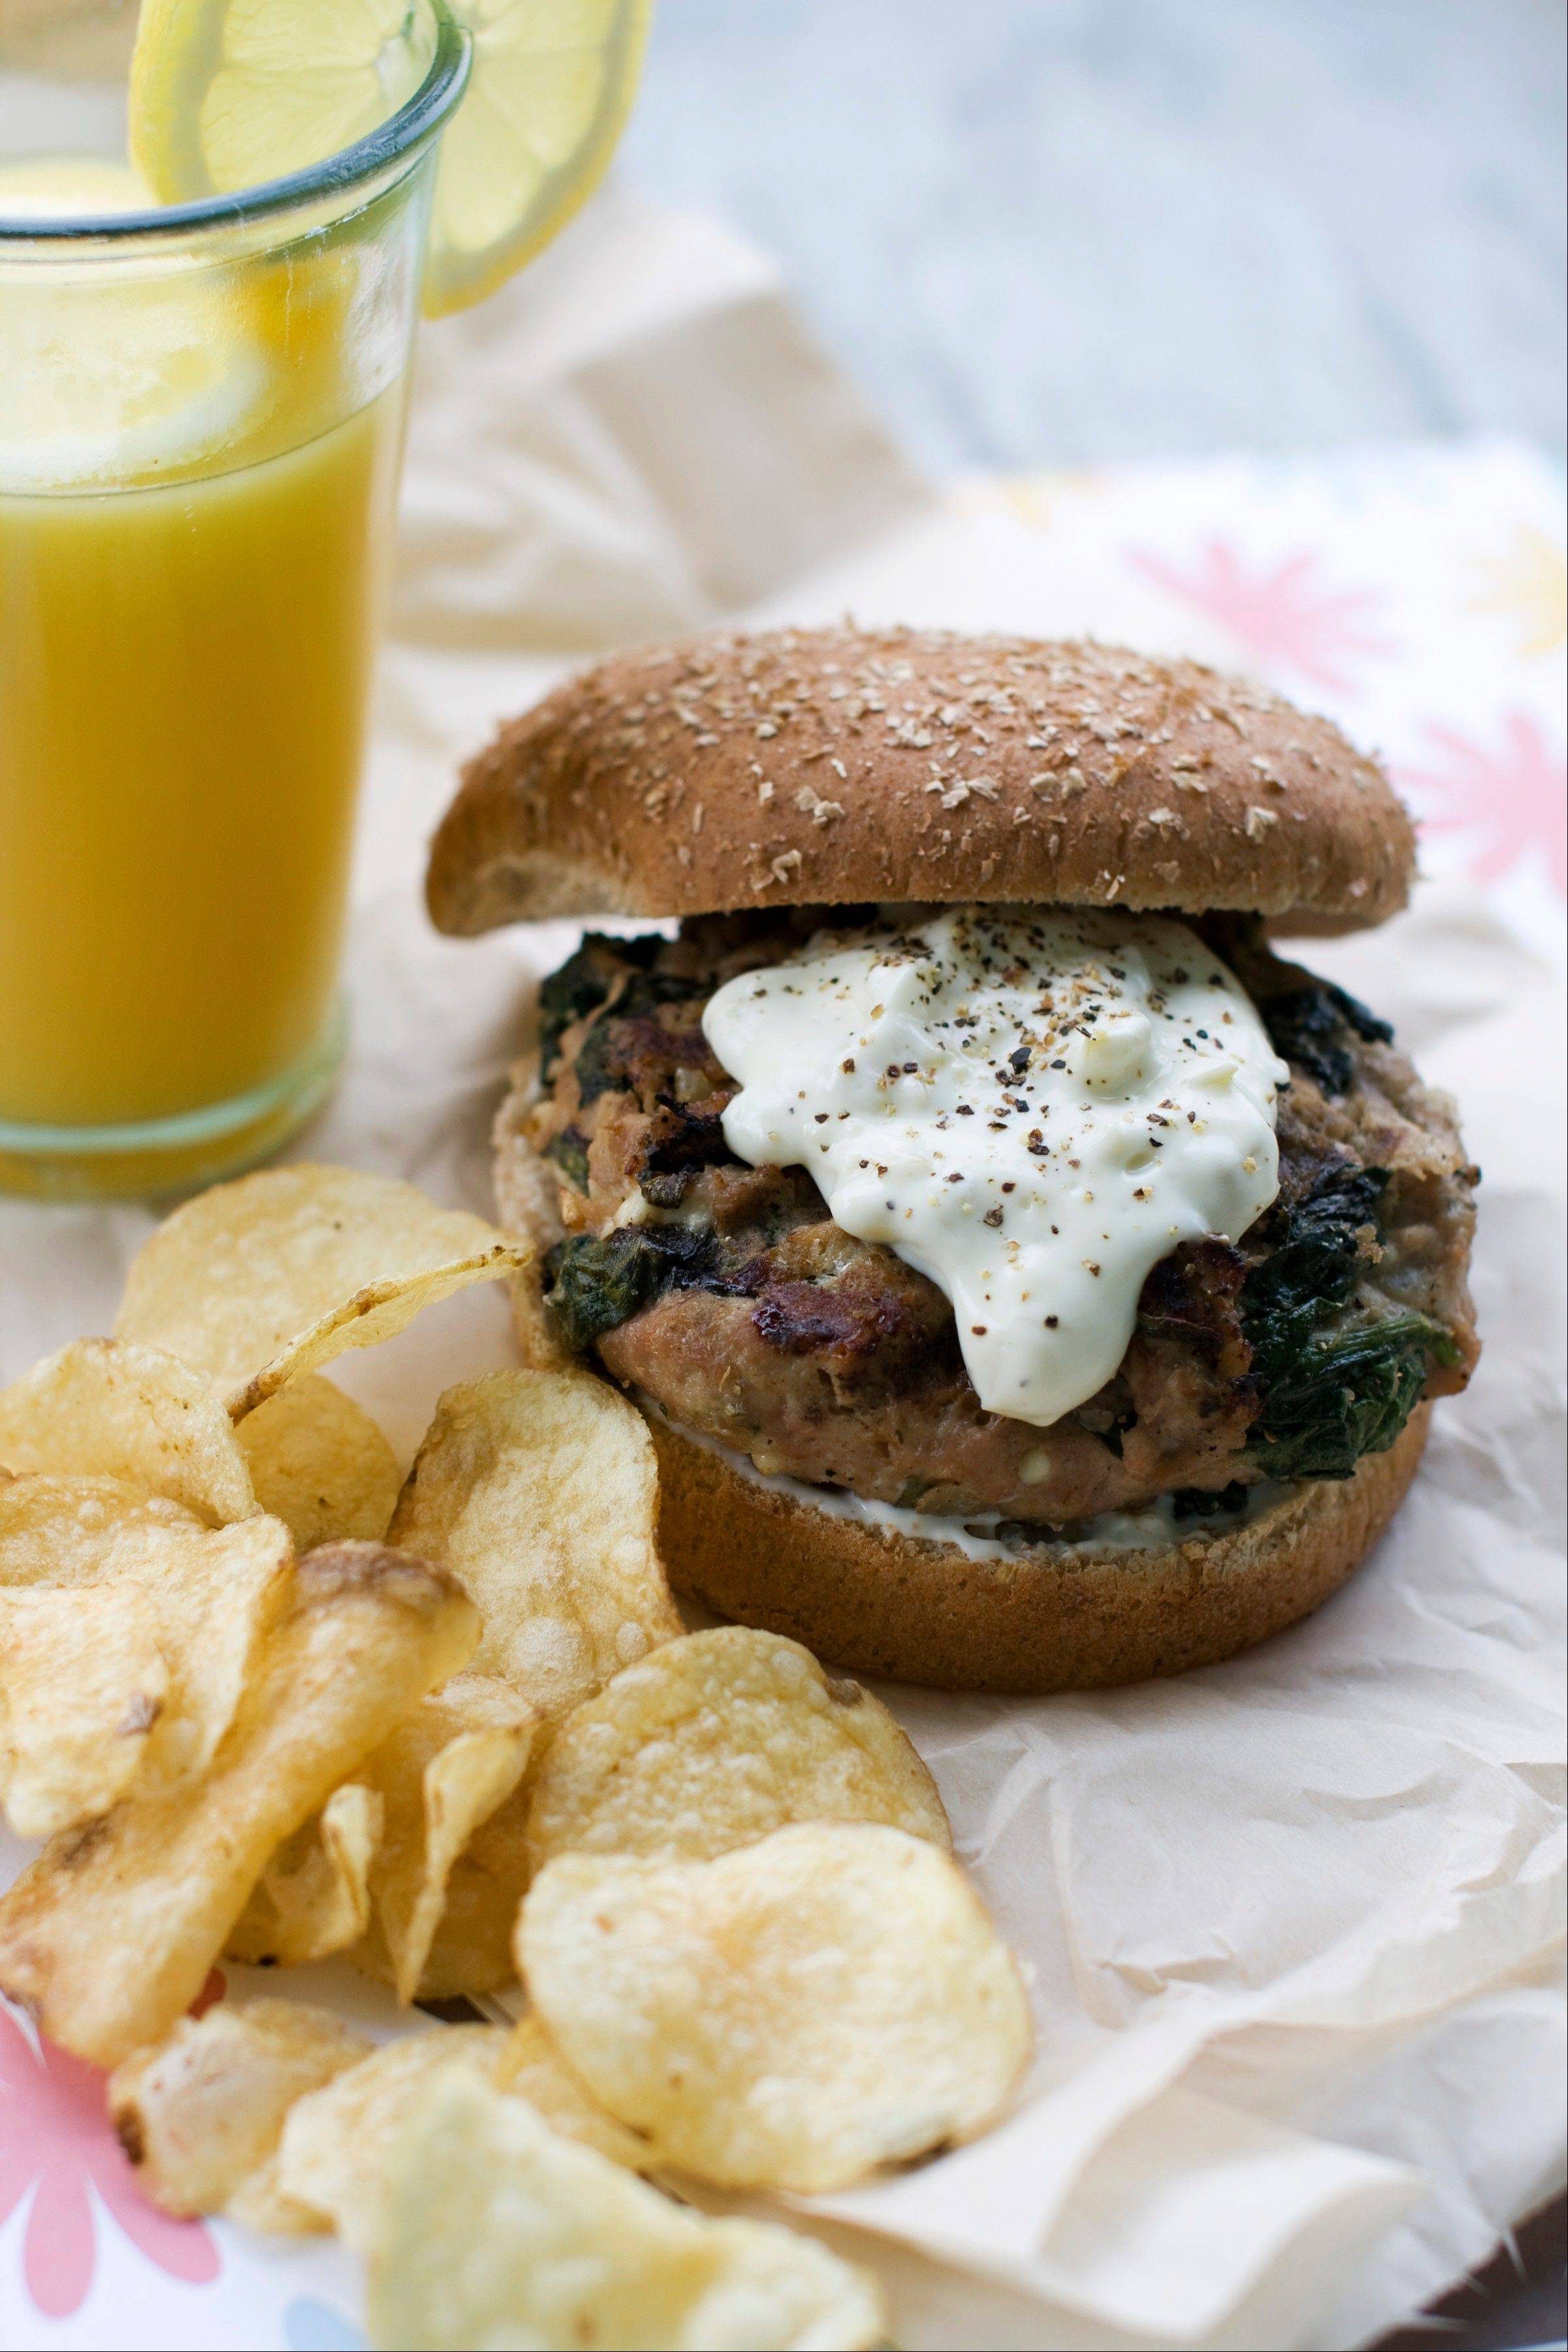 Turkey burgers really can be juicy and flavorful